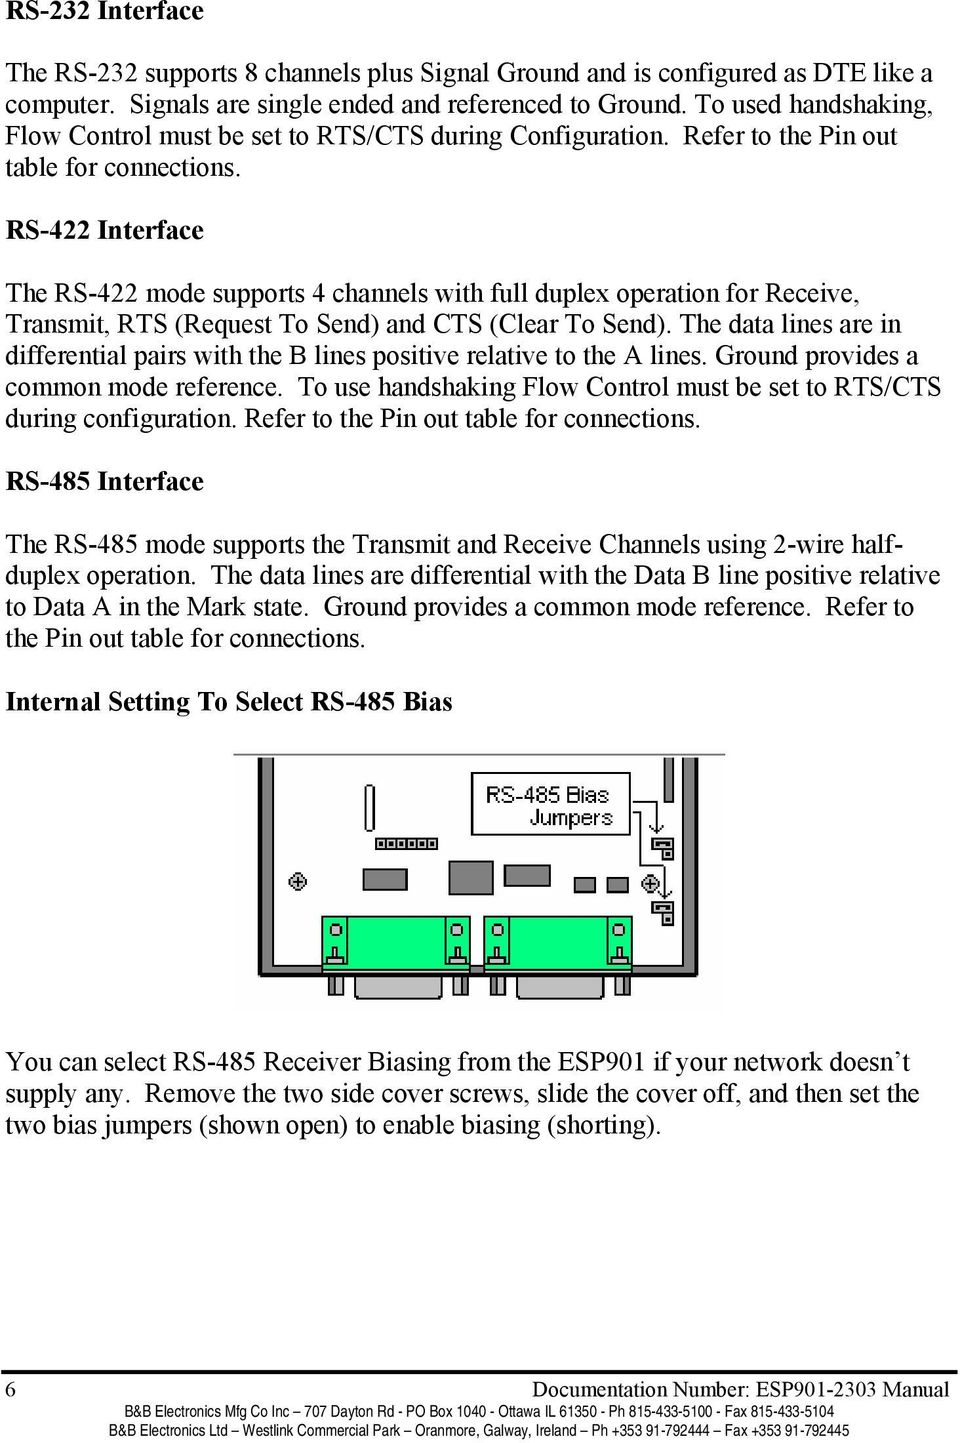 RS-422 Interface The RS-422 mode supports 4 channels with full duplex operation for Receive, Transmit, RTS (Request To Send) and CTS (Clear To Send).